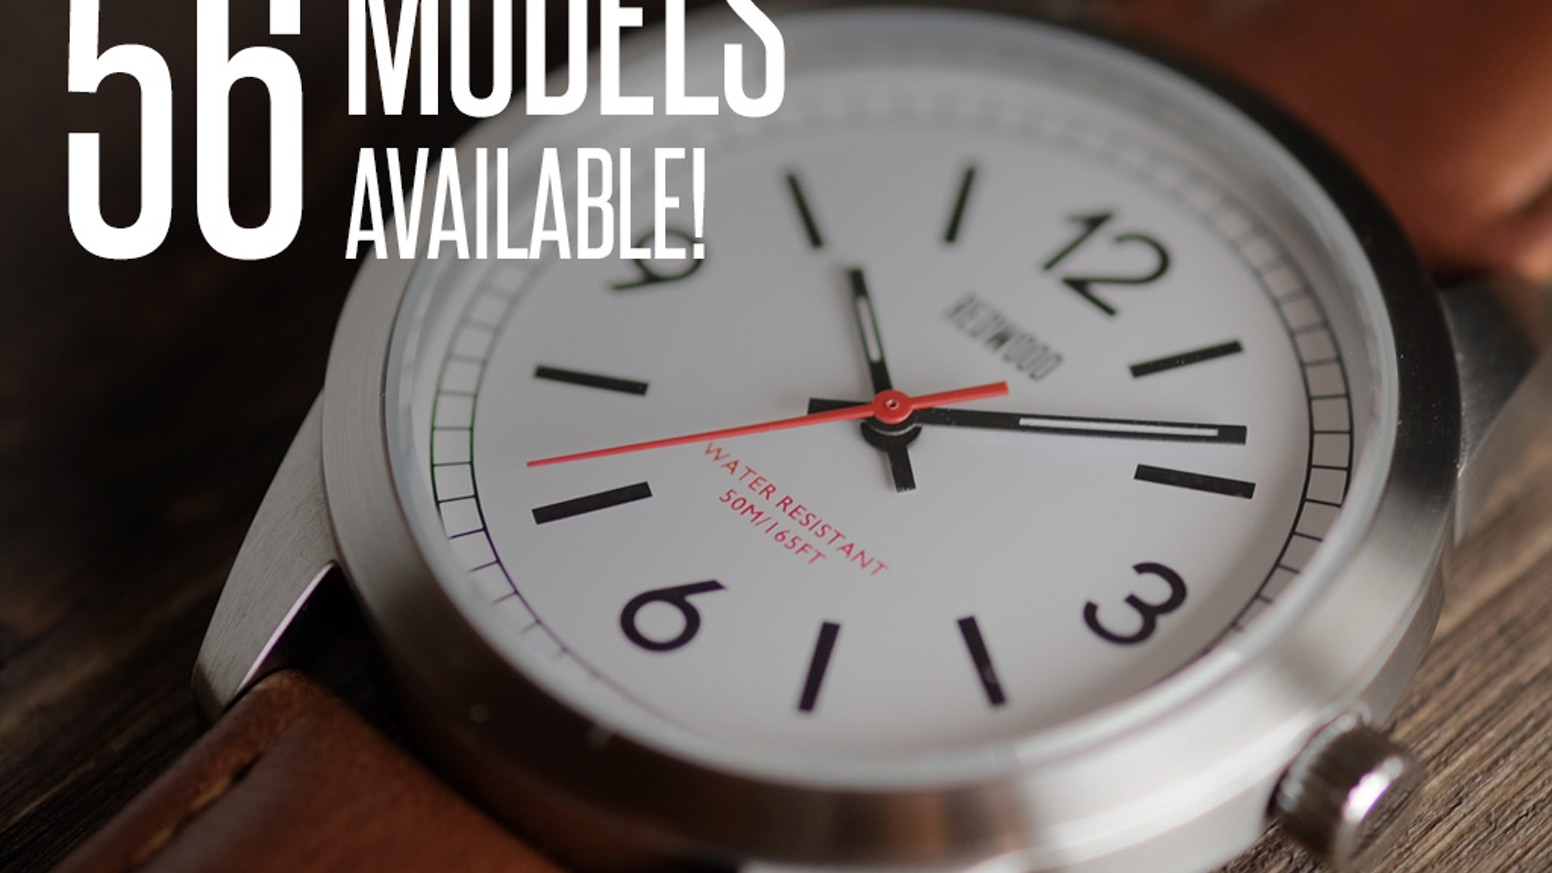 56 Models Inspired by Vintage Field Watches. Functional. Rugged. Designed for the Outdoors. Crazy Value.